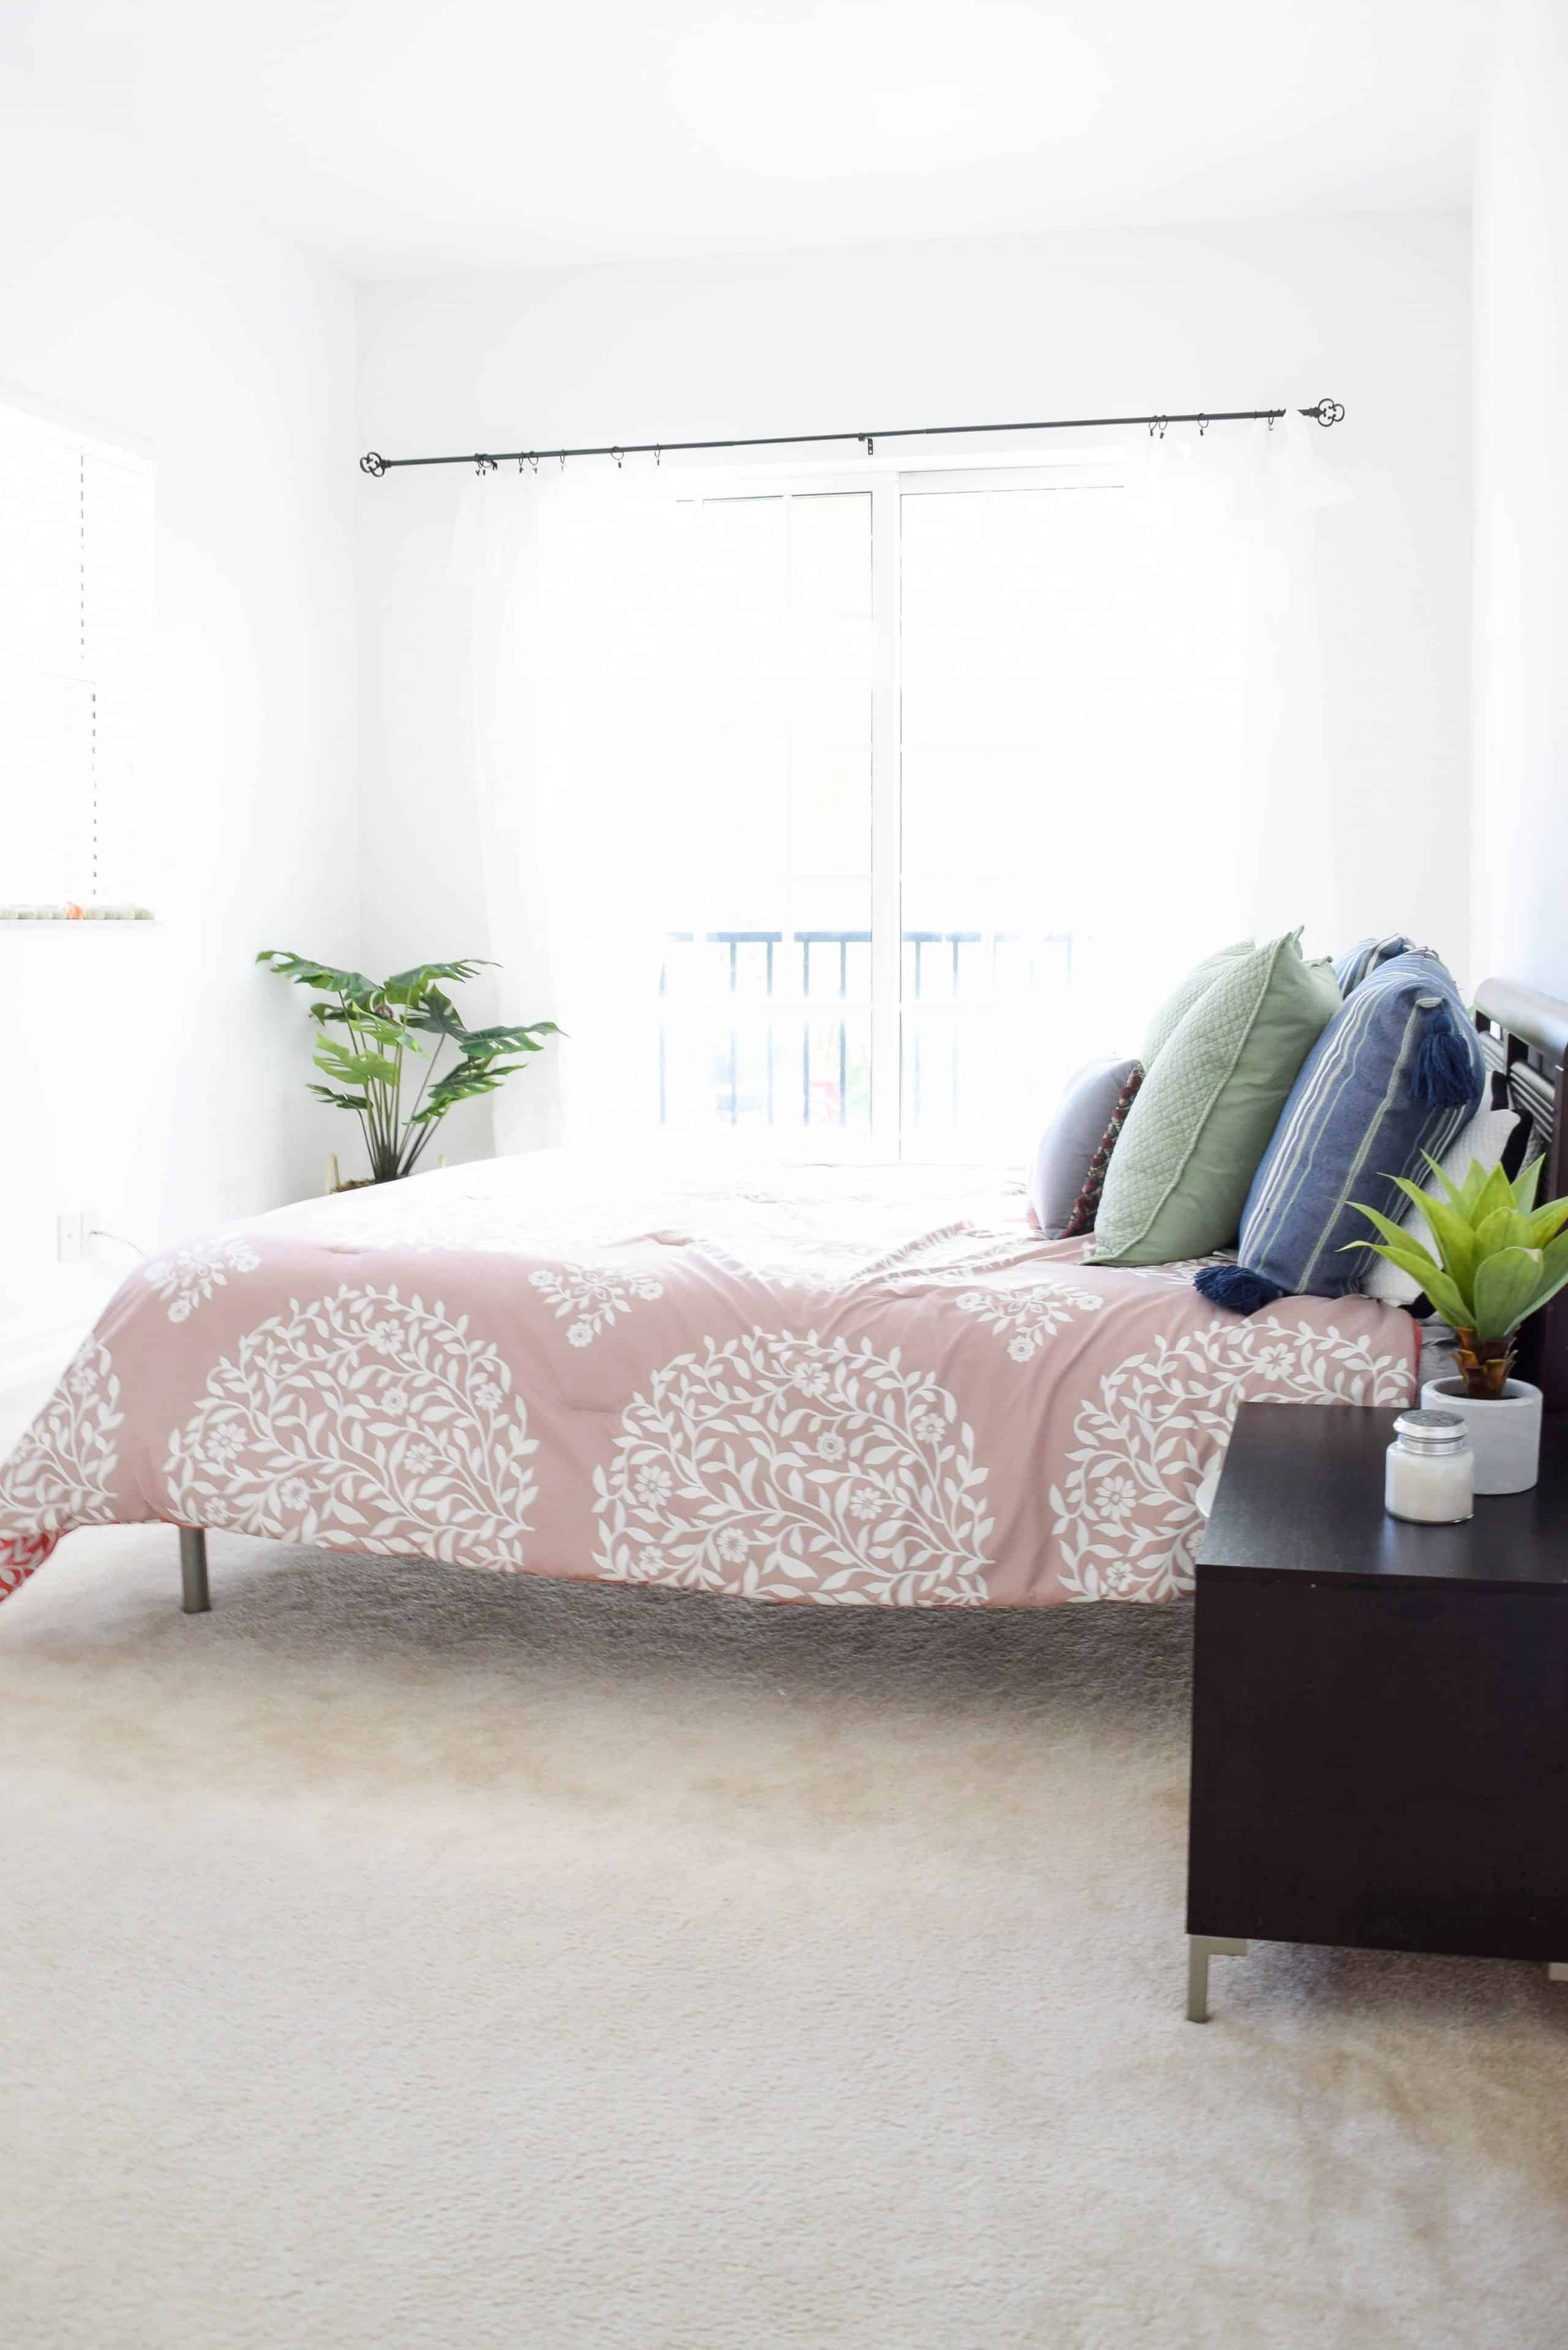 Guest Room Ideas: Upcycling - The Confused Millennial